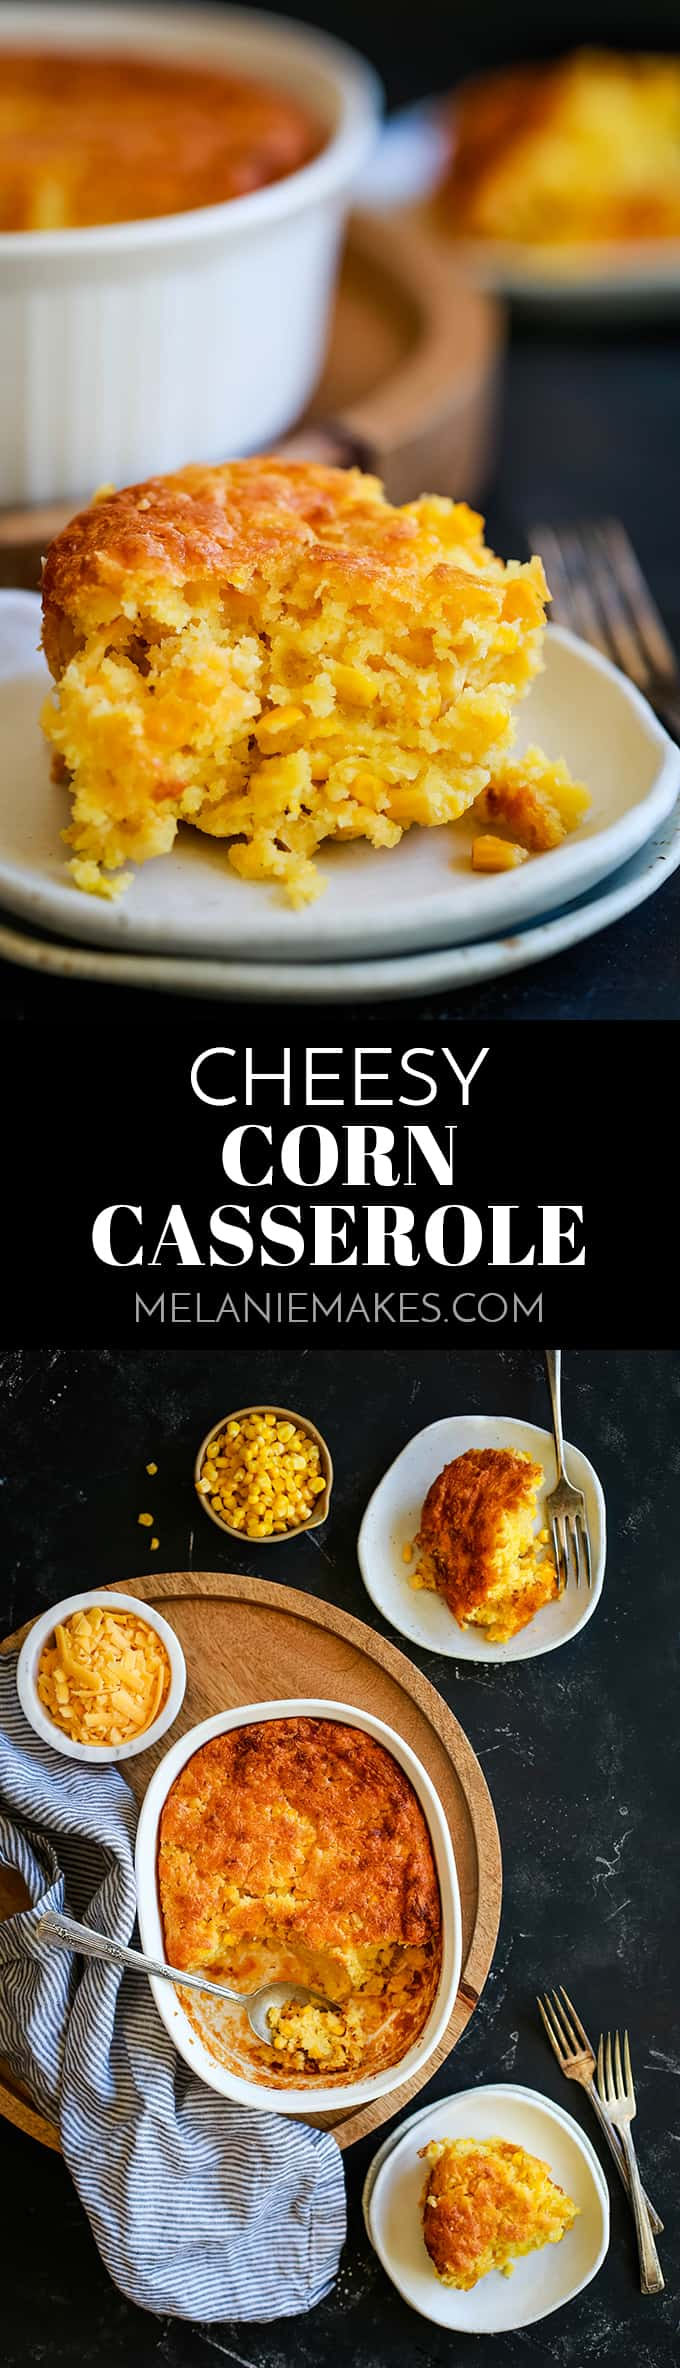 This comforting six ingredient Cheesy Corn Casserole takes just 10 minutes to prepare and will without a doubt become your most requested side dish. #cheese #corn #casserole #sidedish #easyrecipe #thanksgiving #christmas #easter